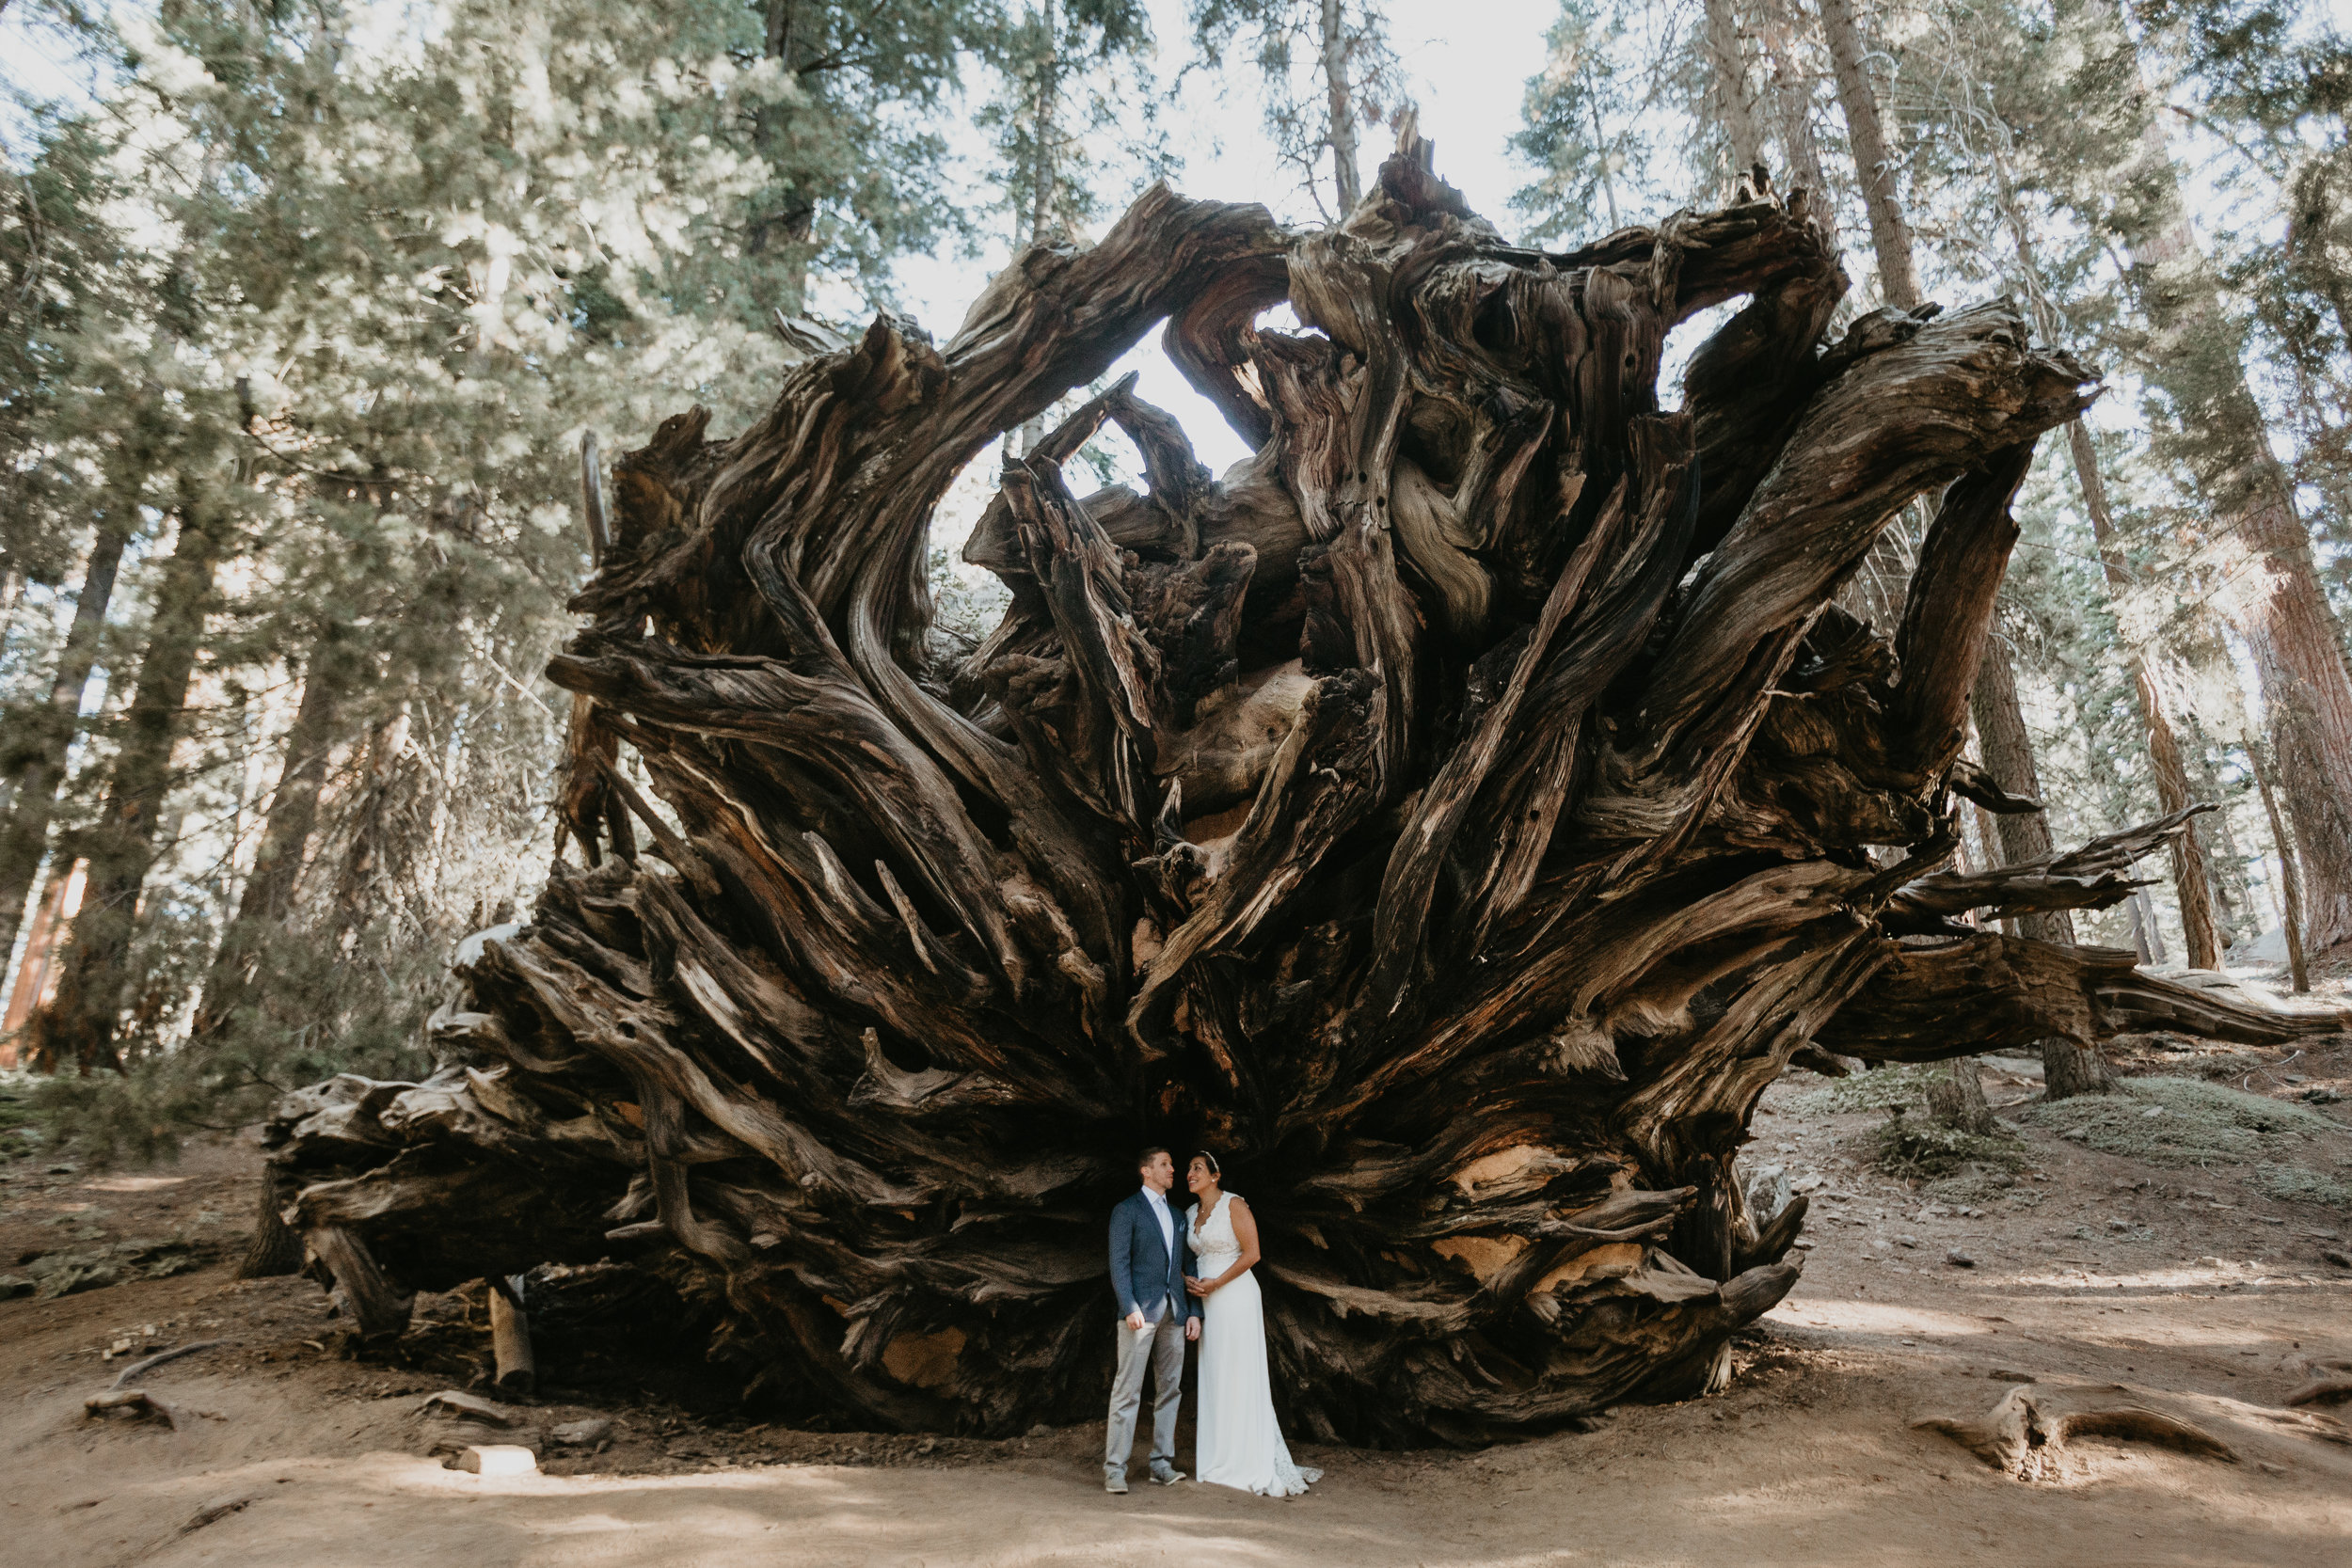 nicole-daacke-photography-sequoia-national-park-adventurous-elopement-sequoia-elopement-photographer-redwoods-california-intimate-wedding-photographer-11.jpg